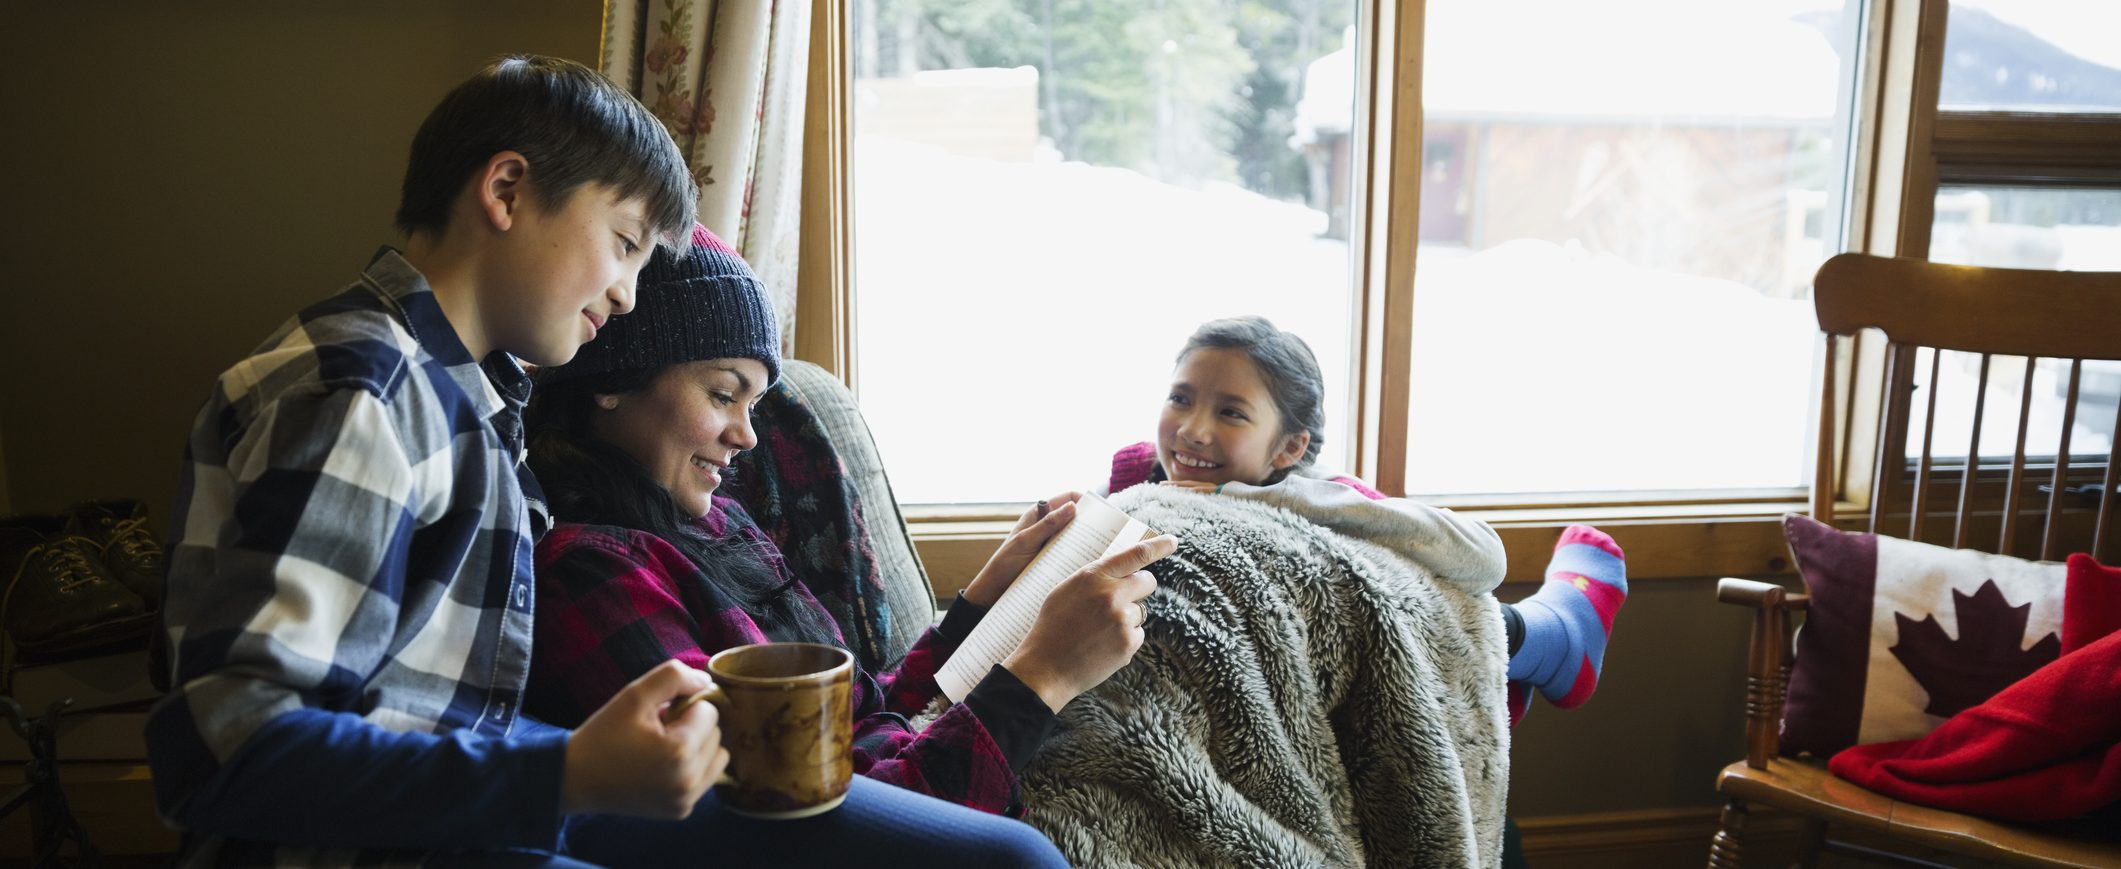 There are plenty of ways to save energy and winterize your home